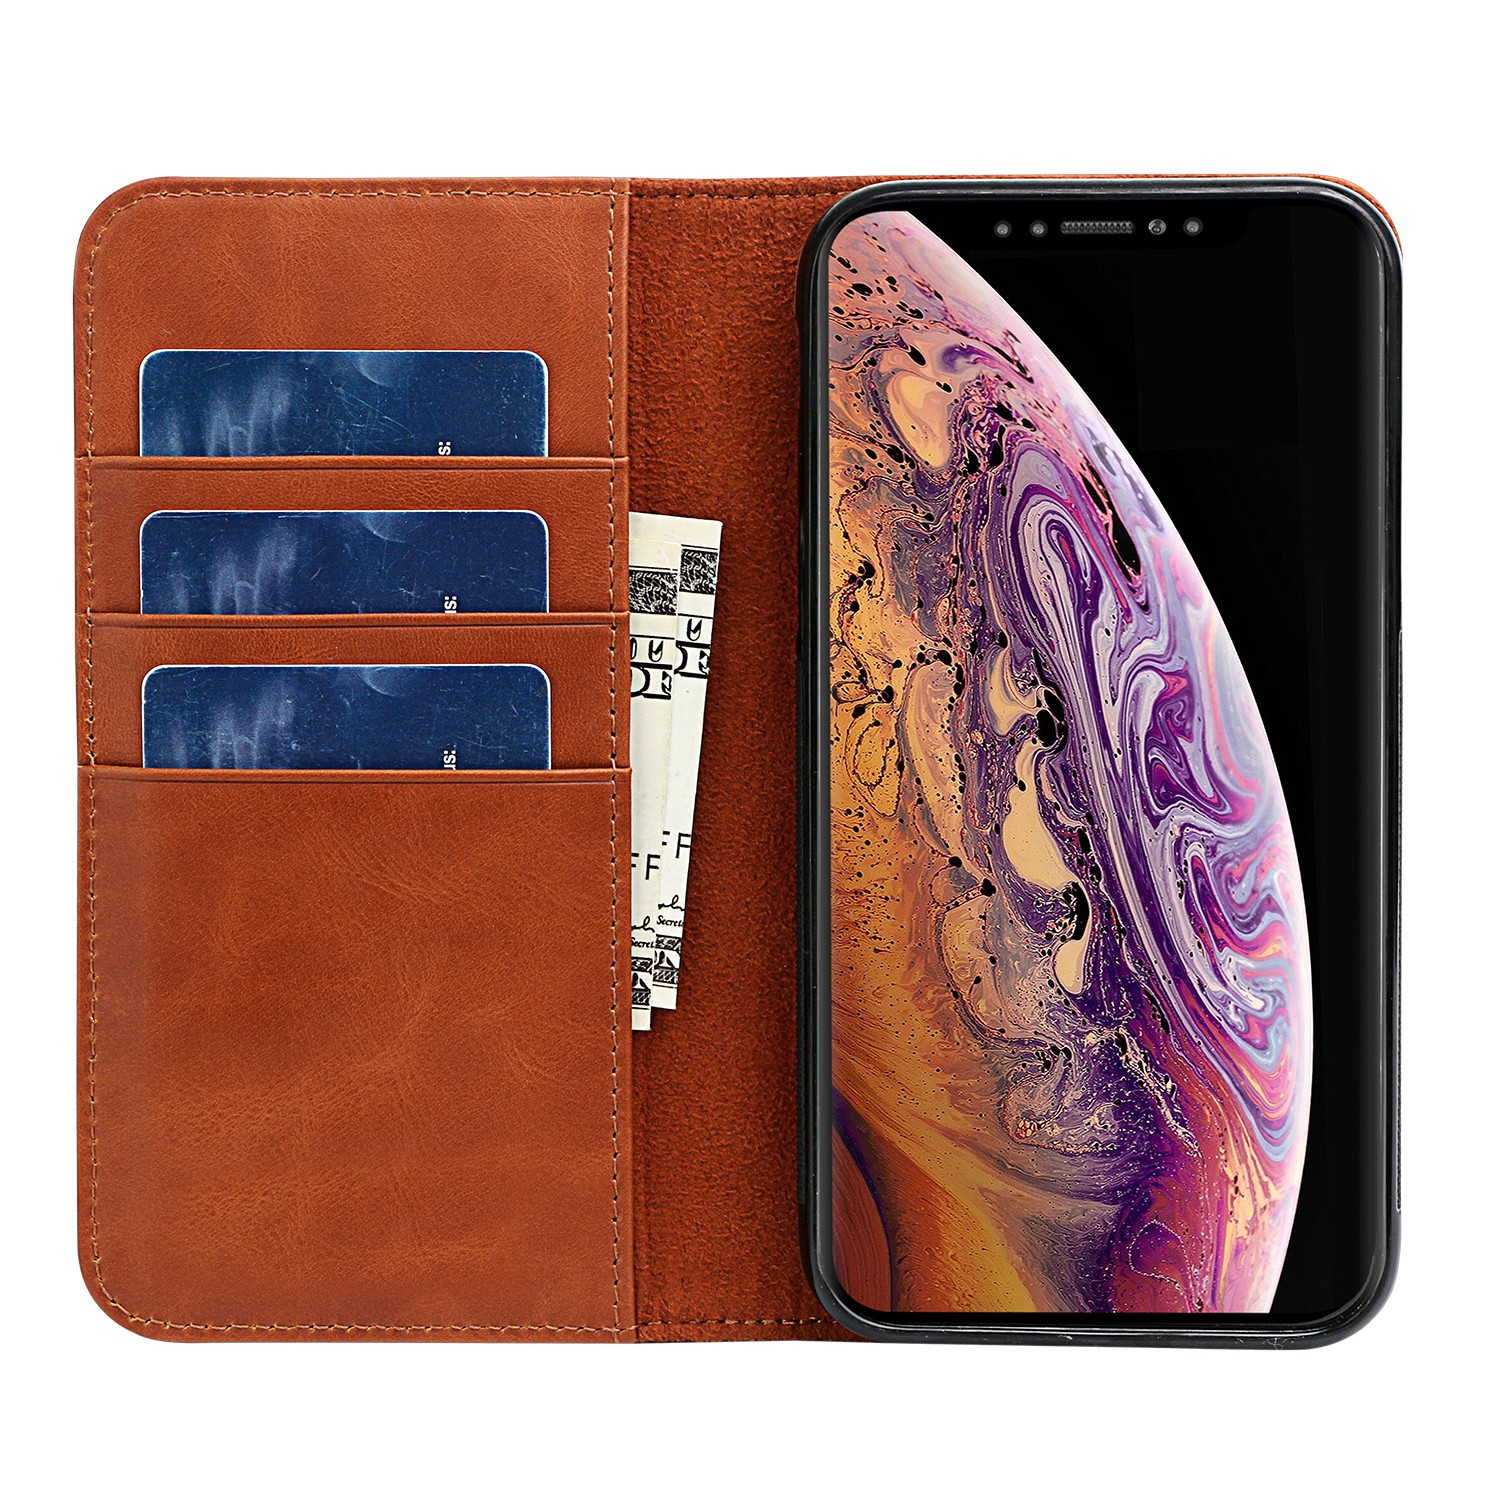 good quality mobile back cover for iPhone 11 on sale for iPhone-3